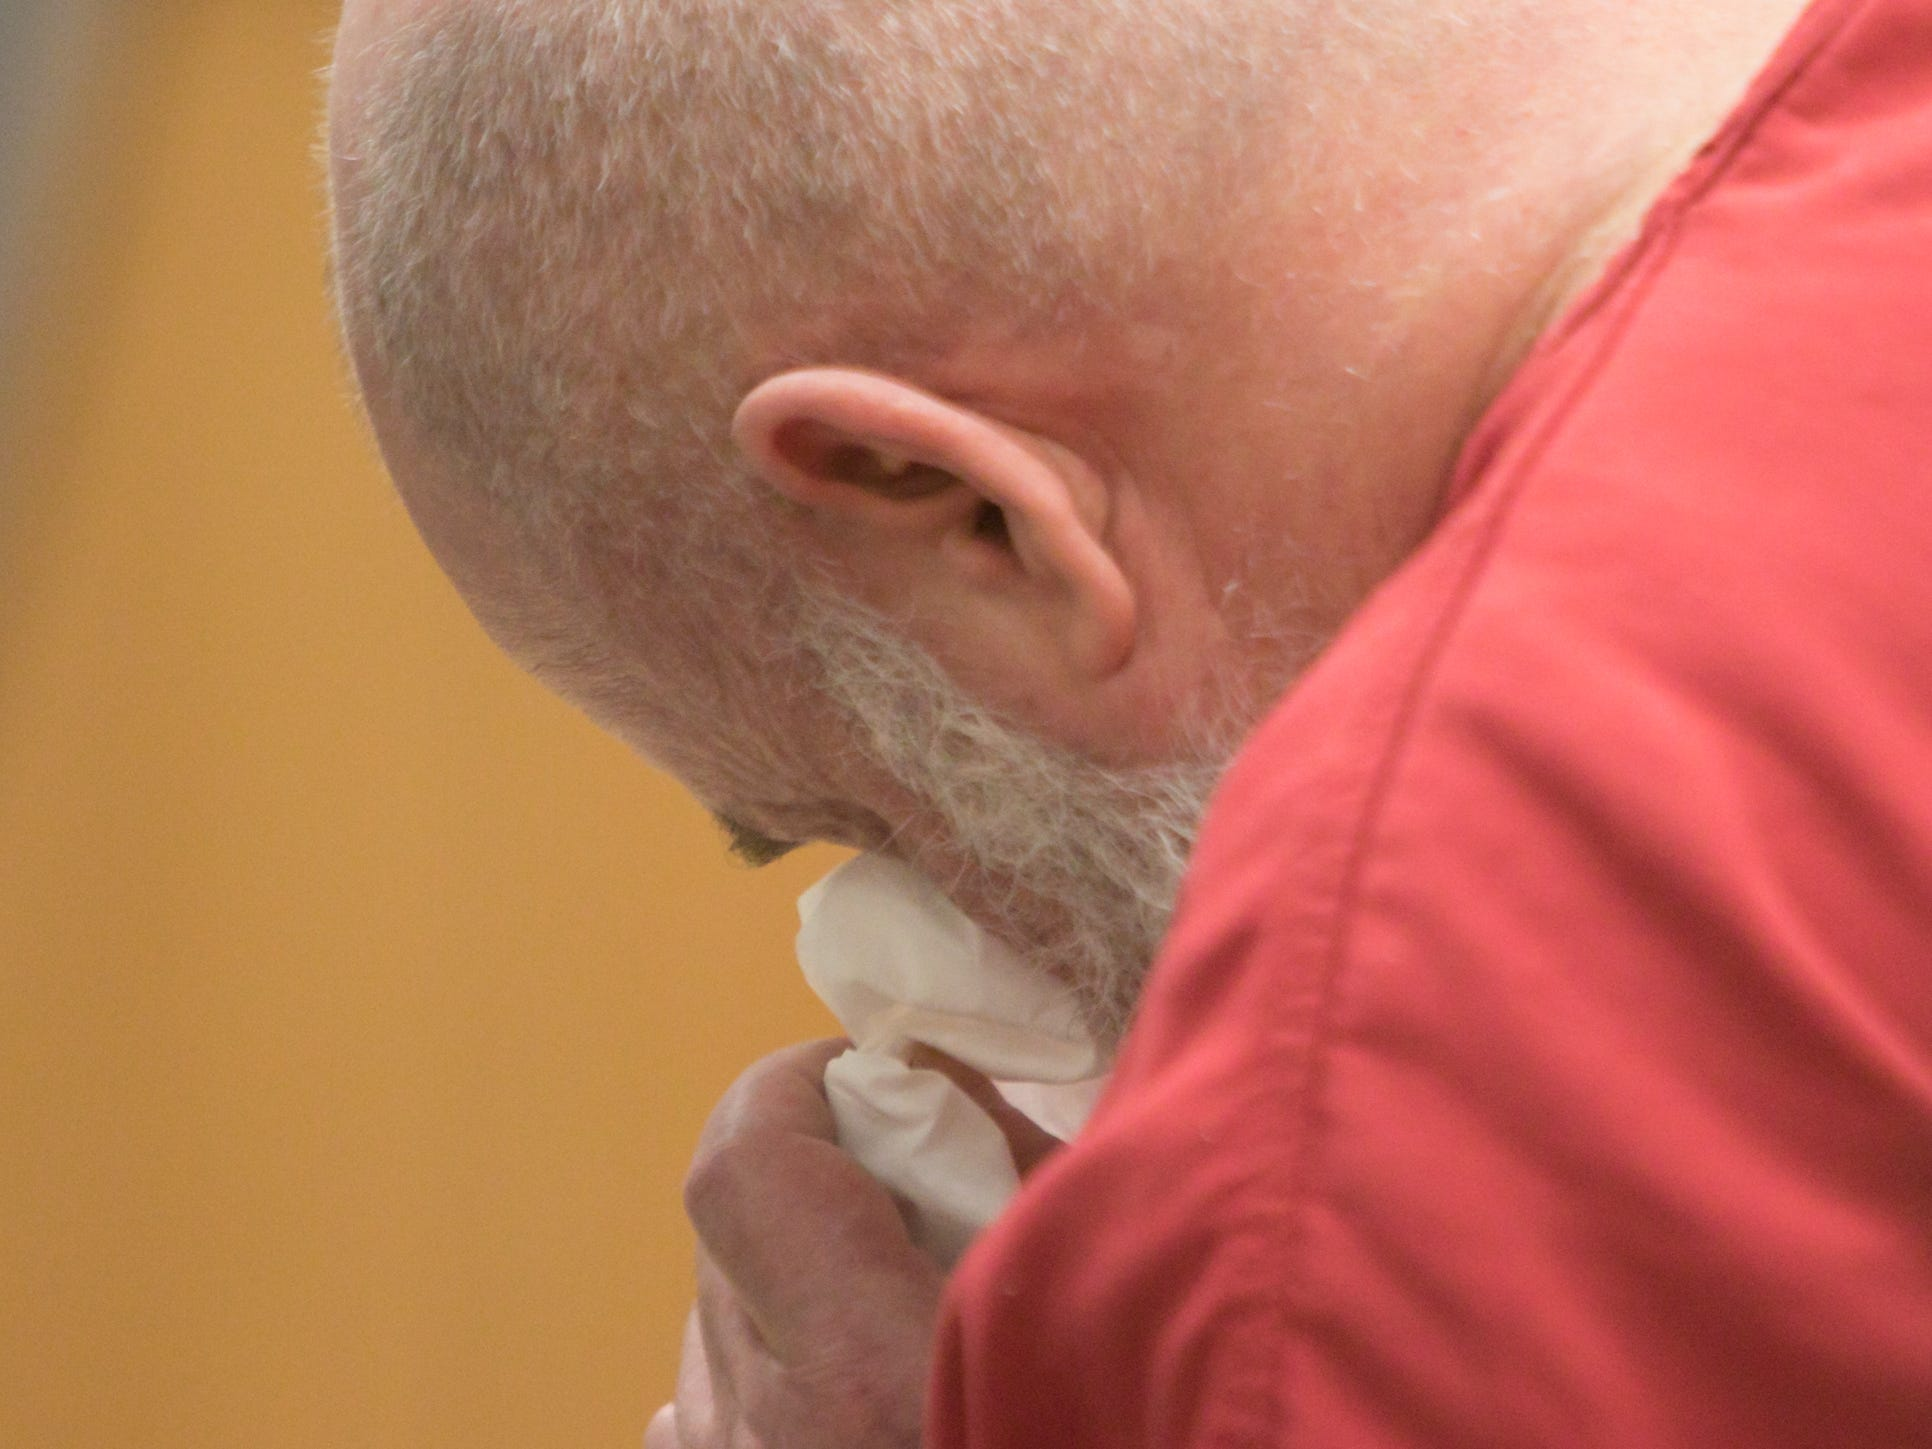 Michael Mapes appears to wipe a tear after reading an apology during his sentencing Thursday, Feb. 21, 2019.